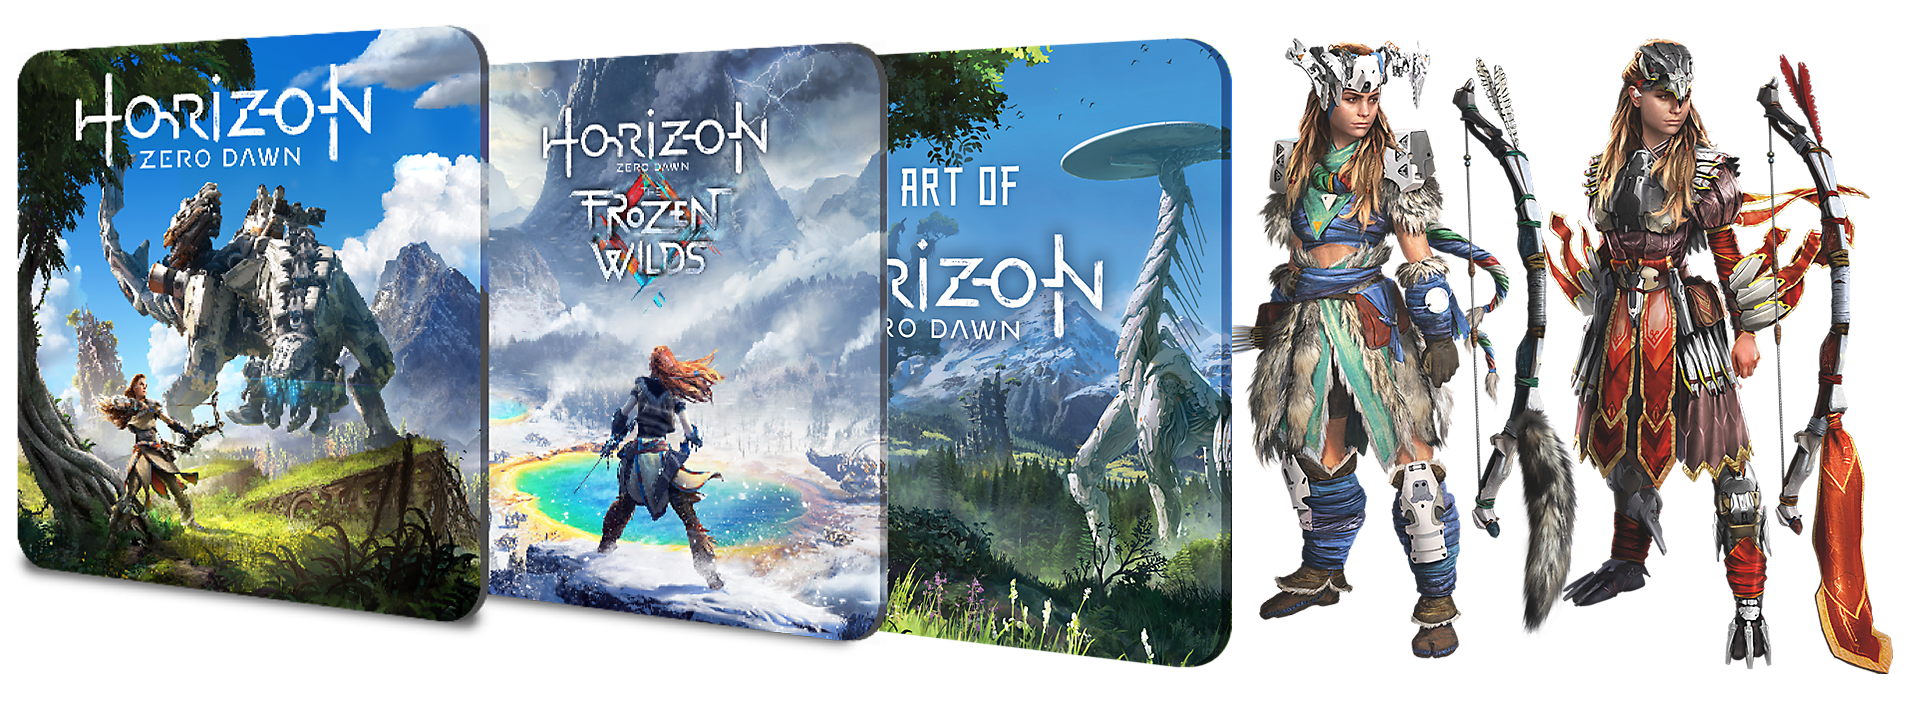 Contents of Horizon Zero Dawn Complete Edition